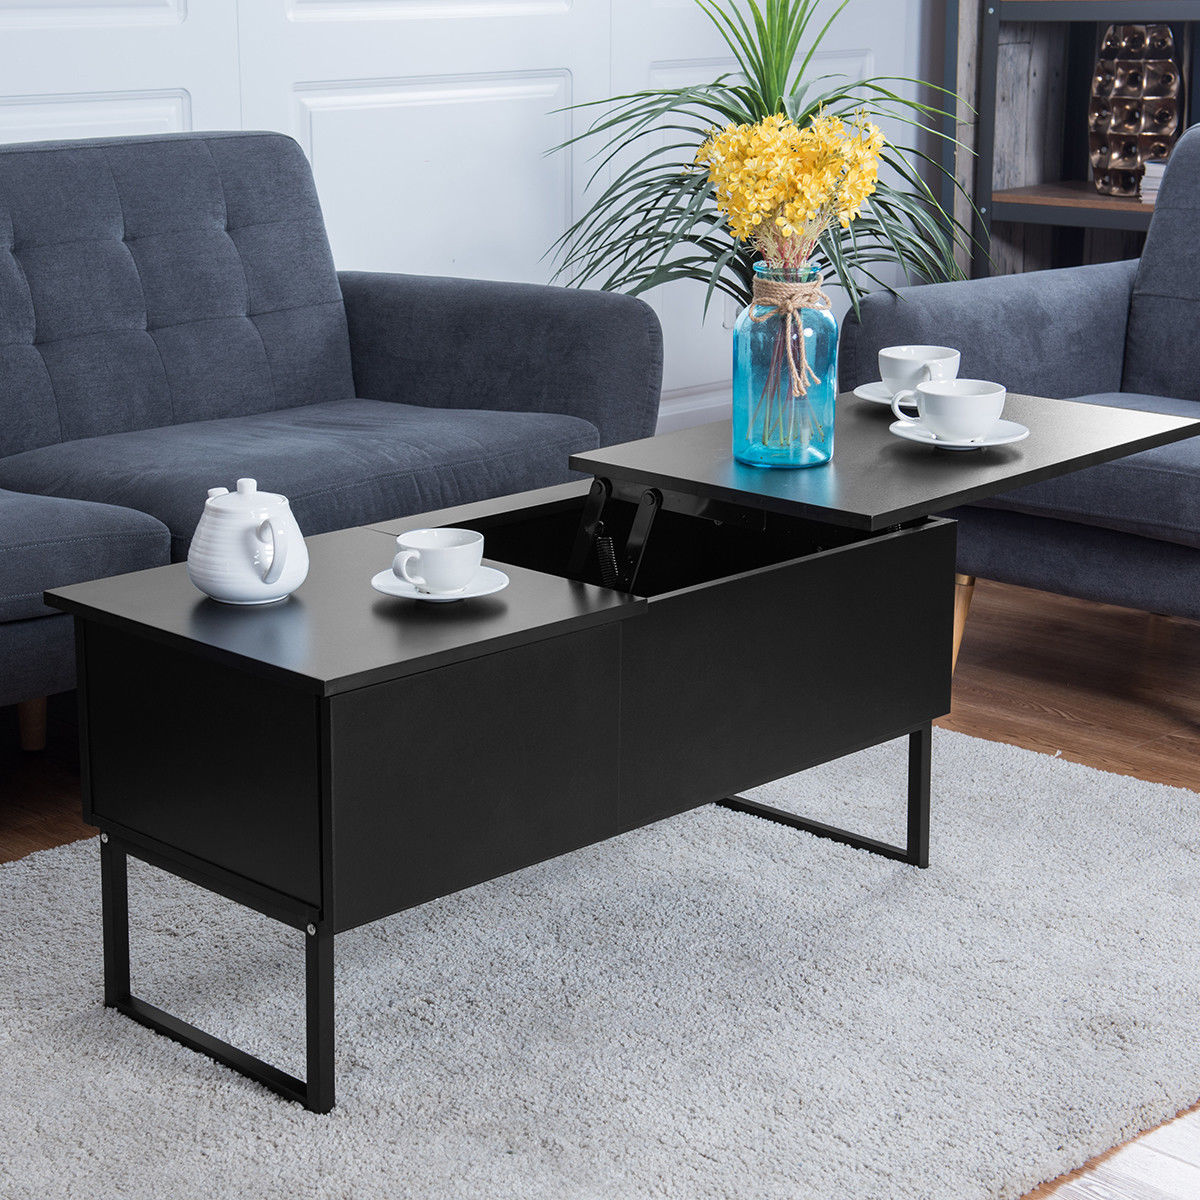 Modern Coffee Table With Storage Us 94 99 Giantex Modern Coffee Table Lift Top Home Living Room Wood Storage Furniture Hidden Space Side Tables Hw56626bk In Coffee Tables From